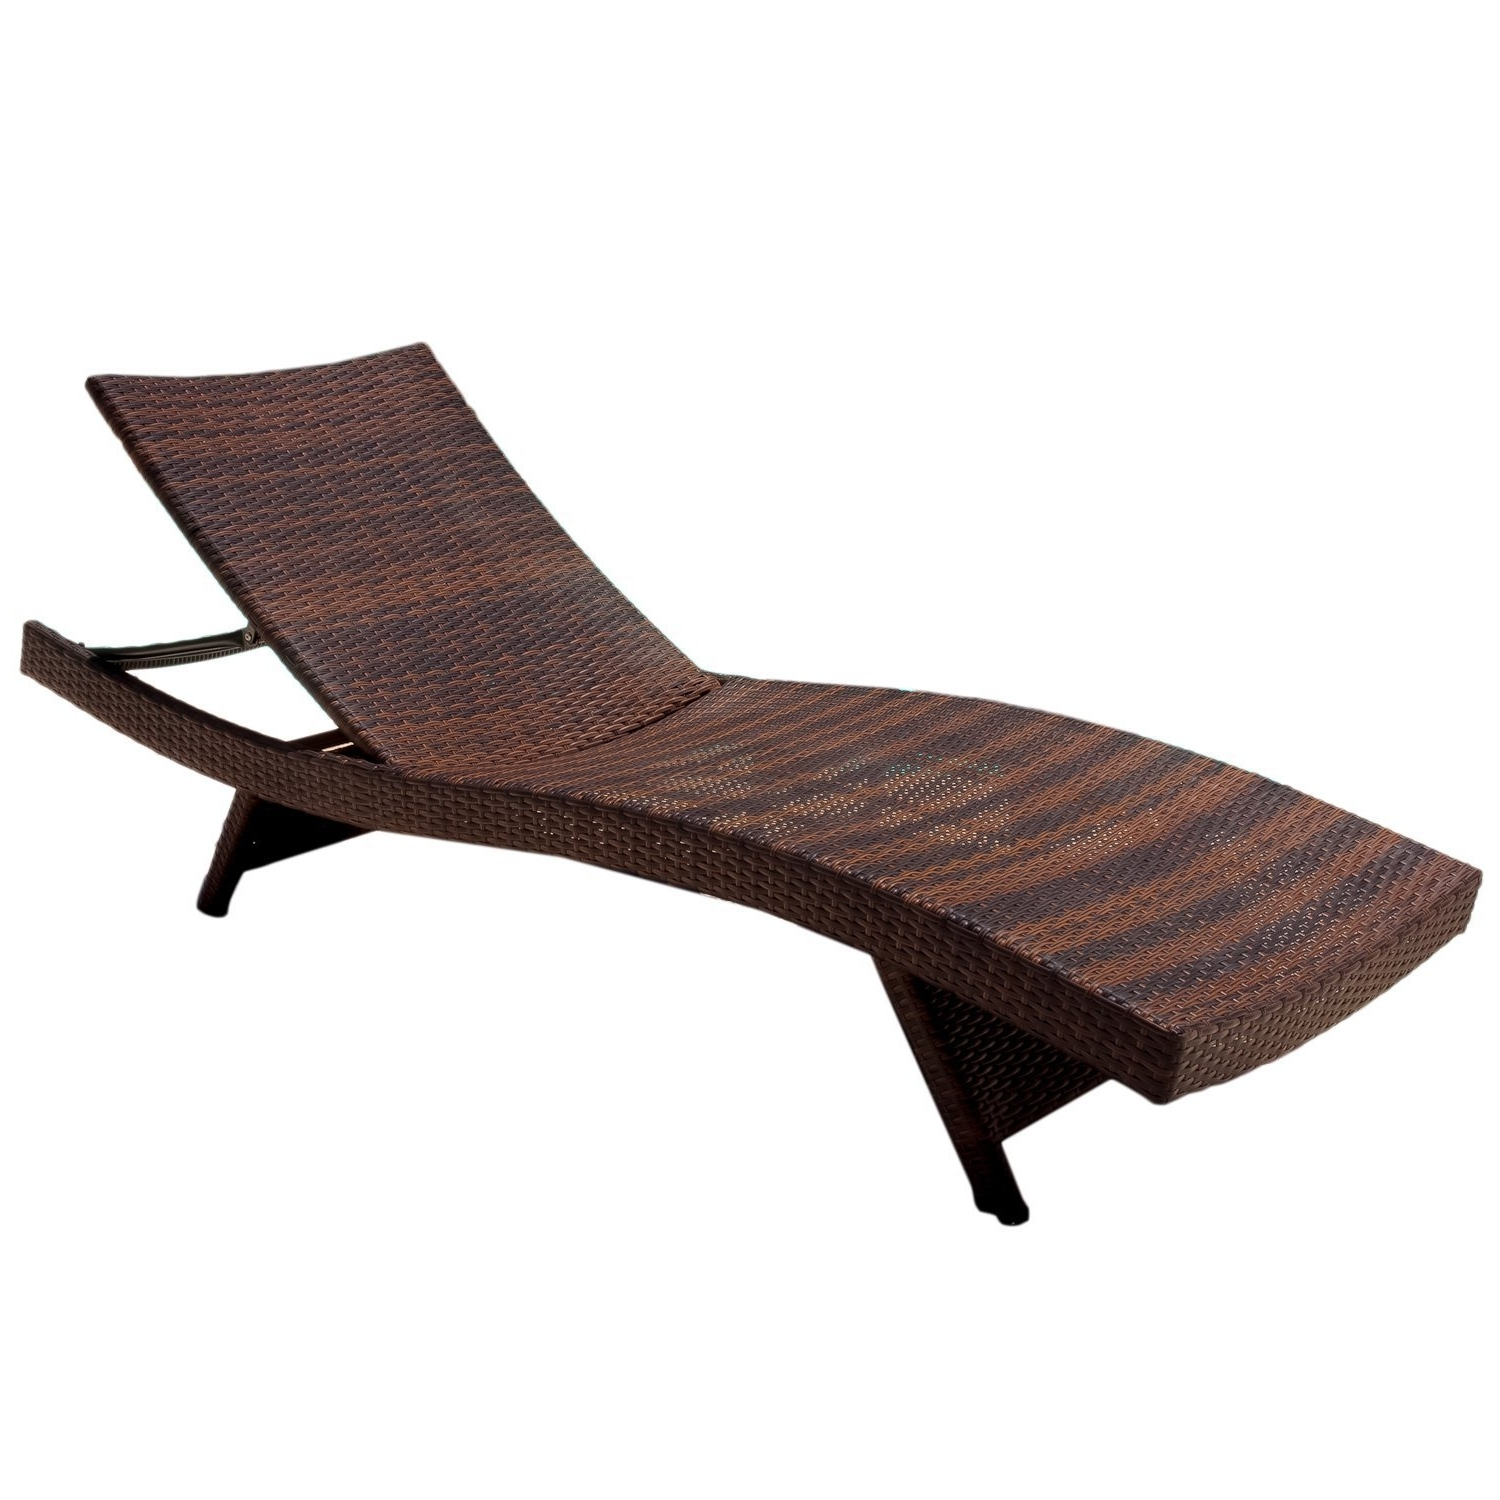 Amazon : Best Selling Outdoor Adjustable Wicker Lounge, Brown Throughout Trendy Wicker Chaise Lounge Chairs For Outdoor (View 5 of 15)